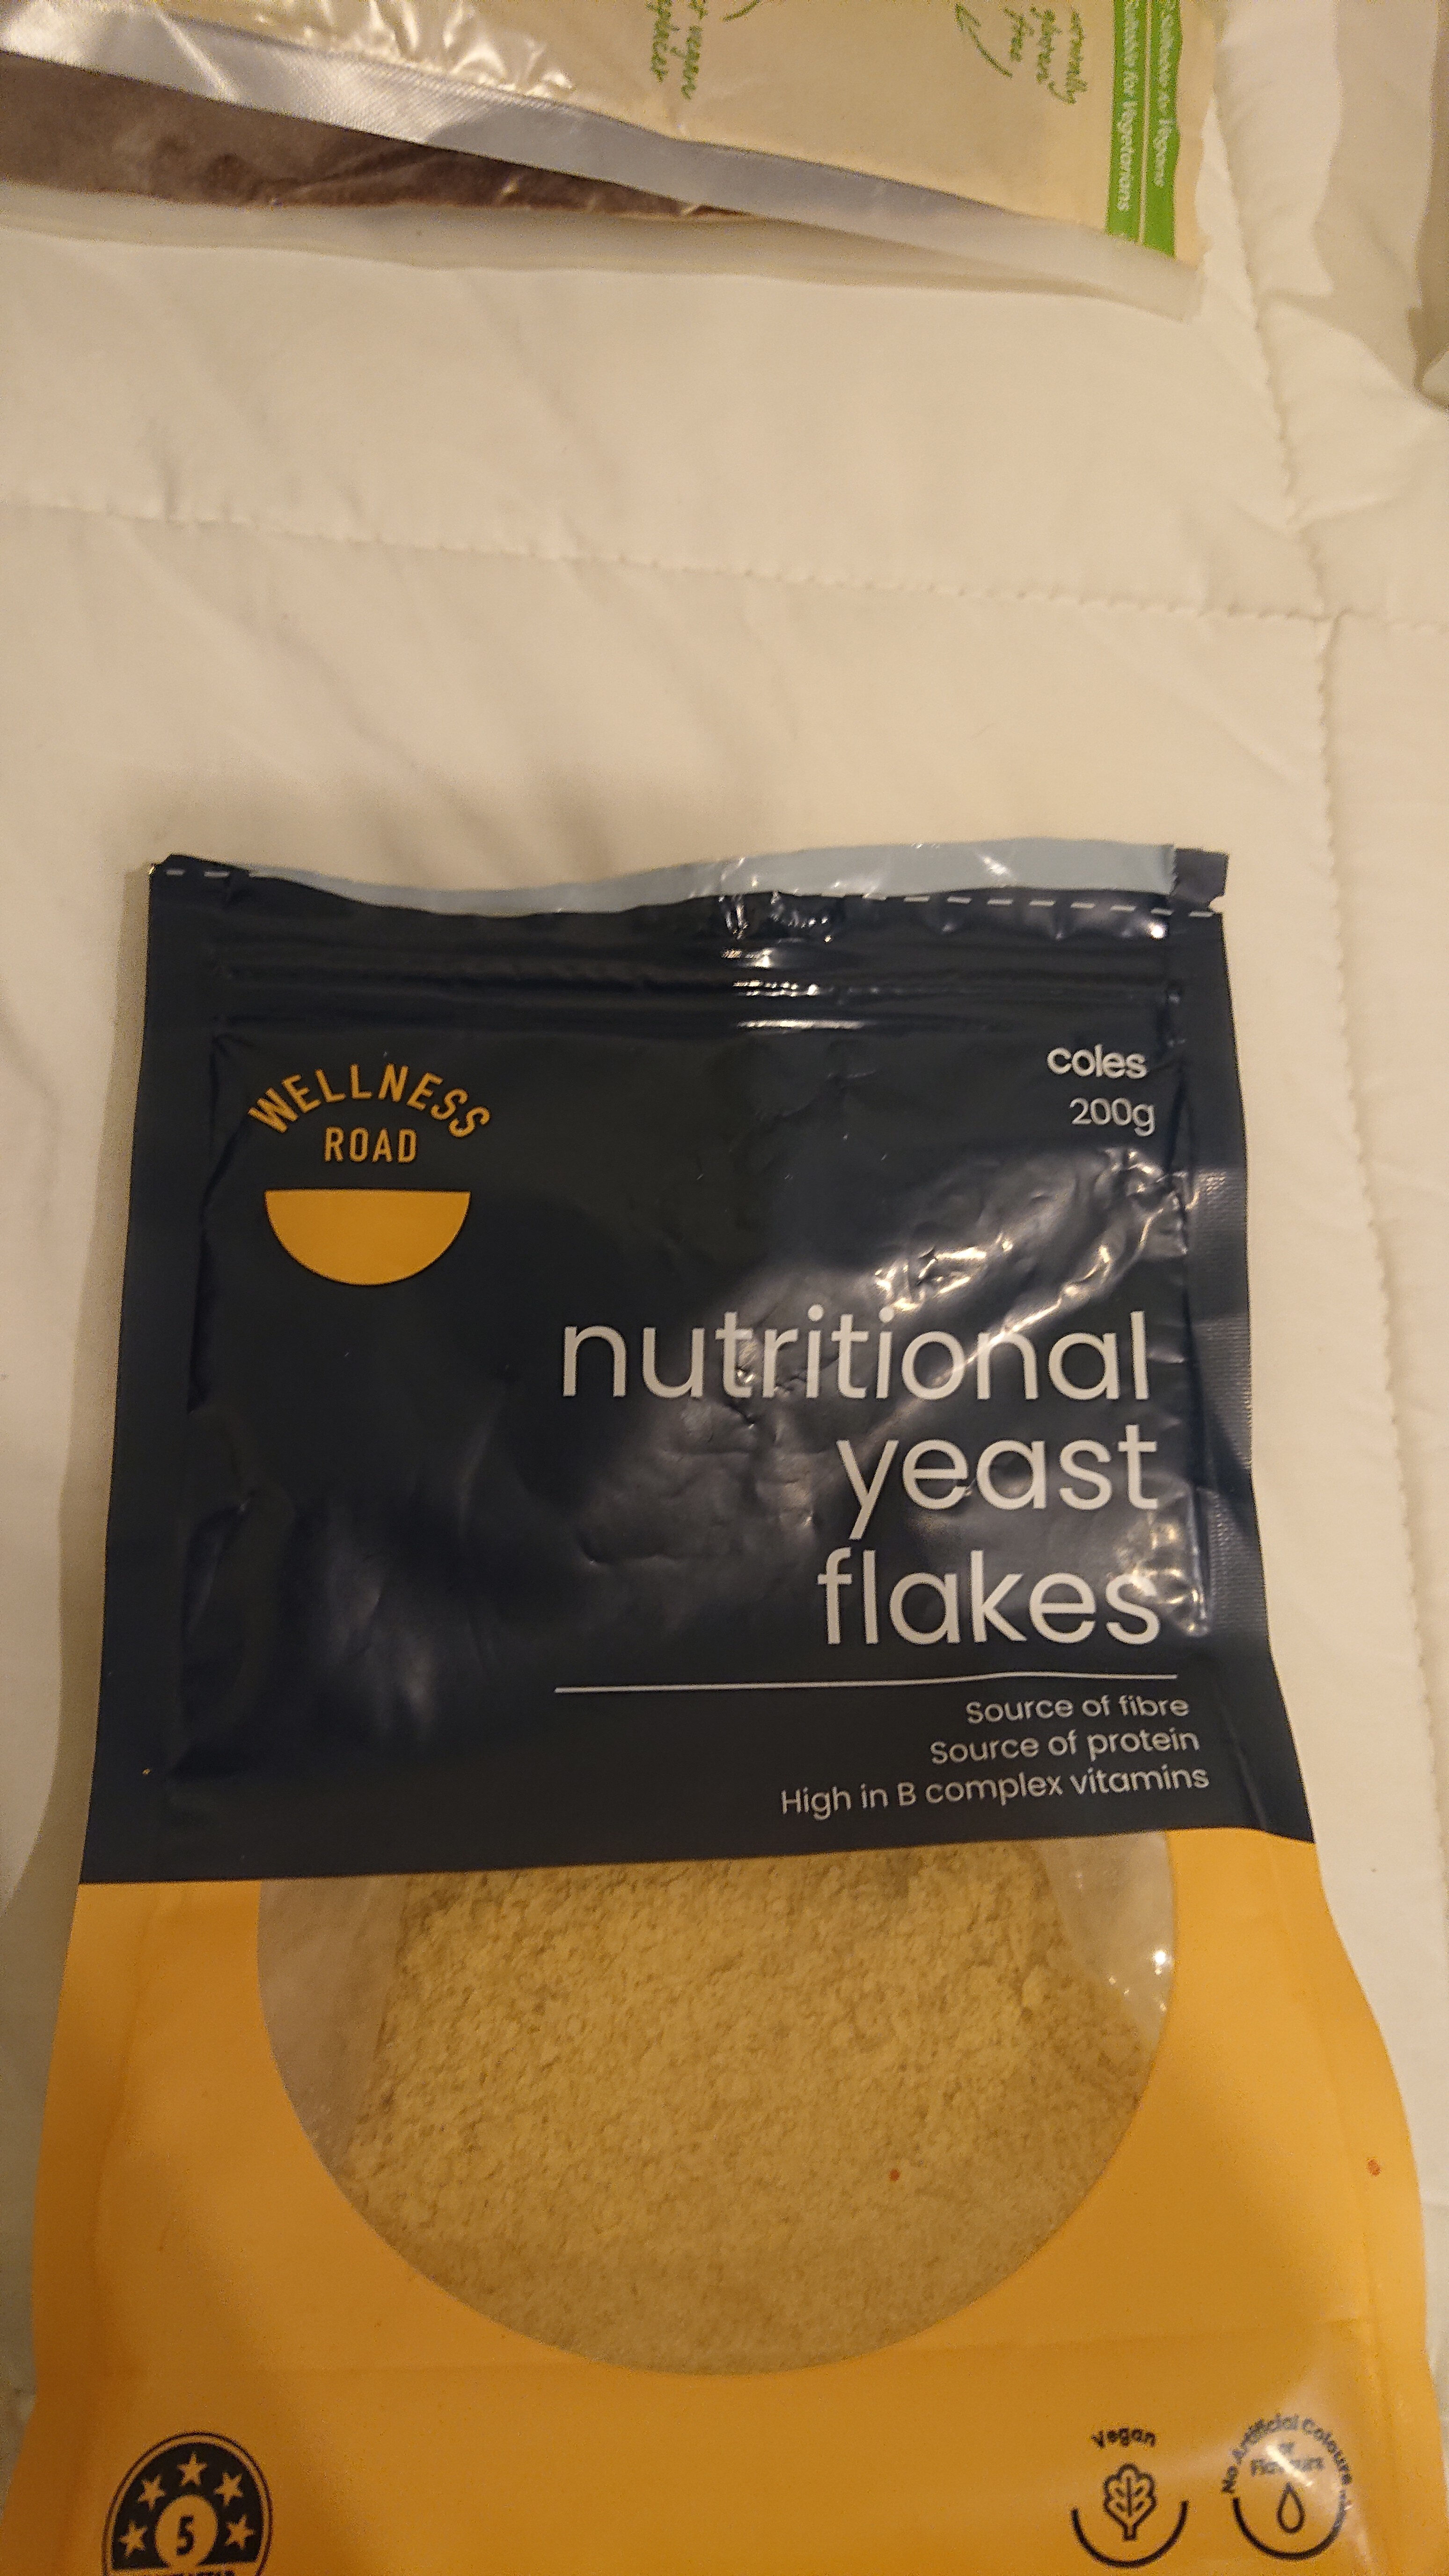 nutritional yeast flakes - Product - en